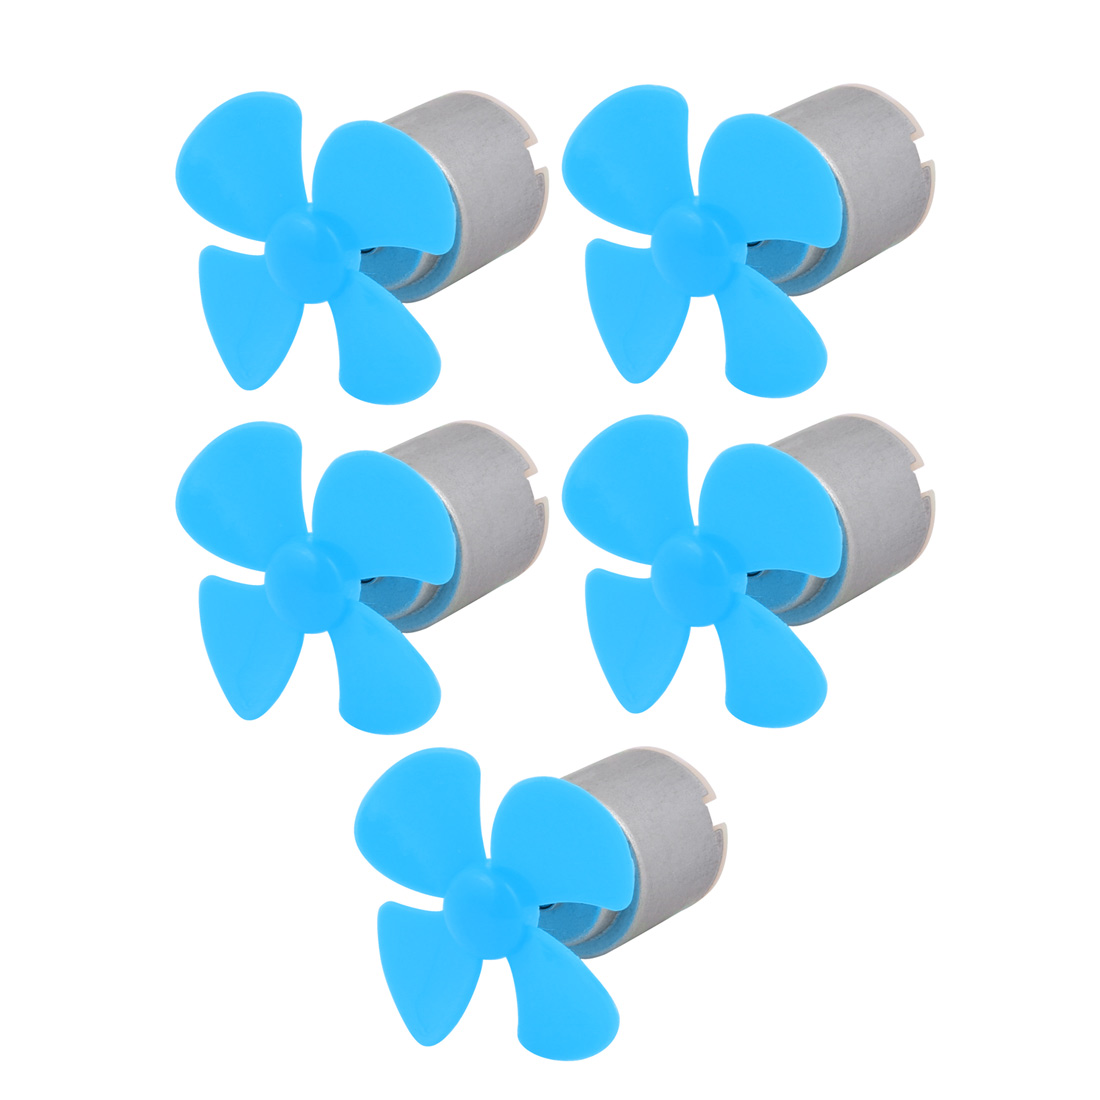 5pcs DC 3V 0.13A 13000RPM Strong Force Motor 4 Blades 40mm Blue Propeller for RC Aircraft